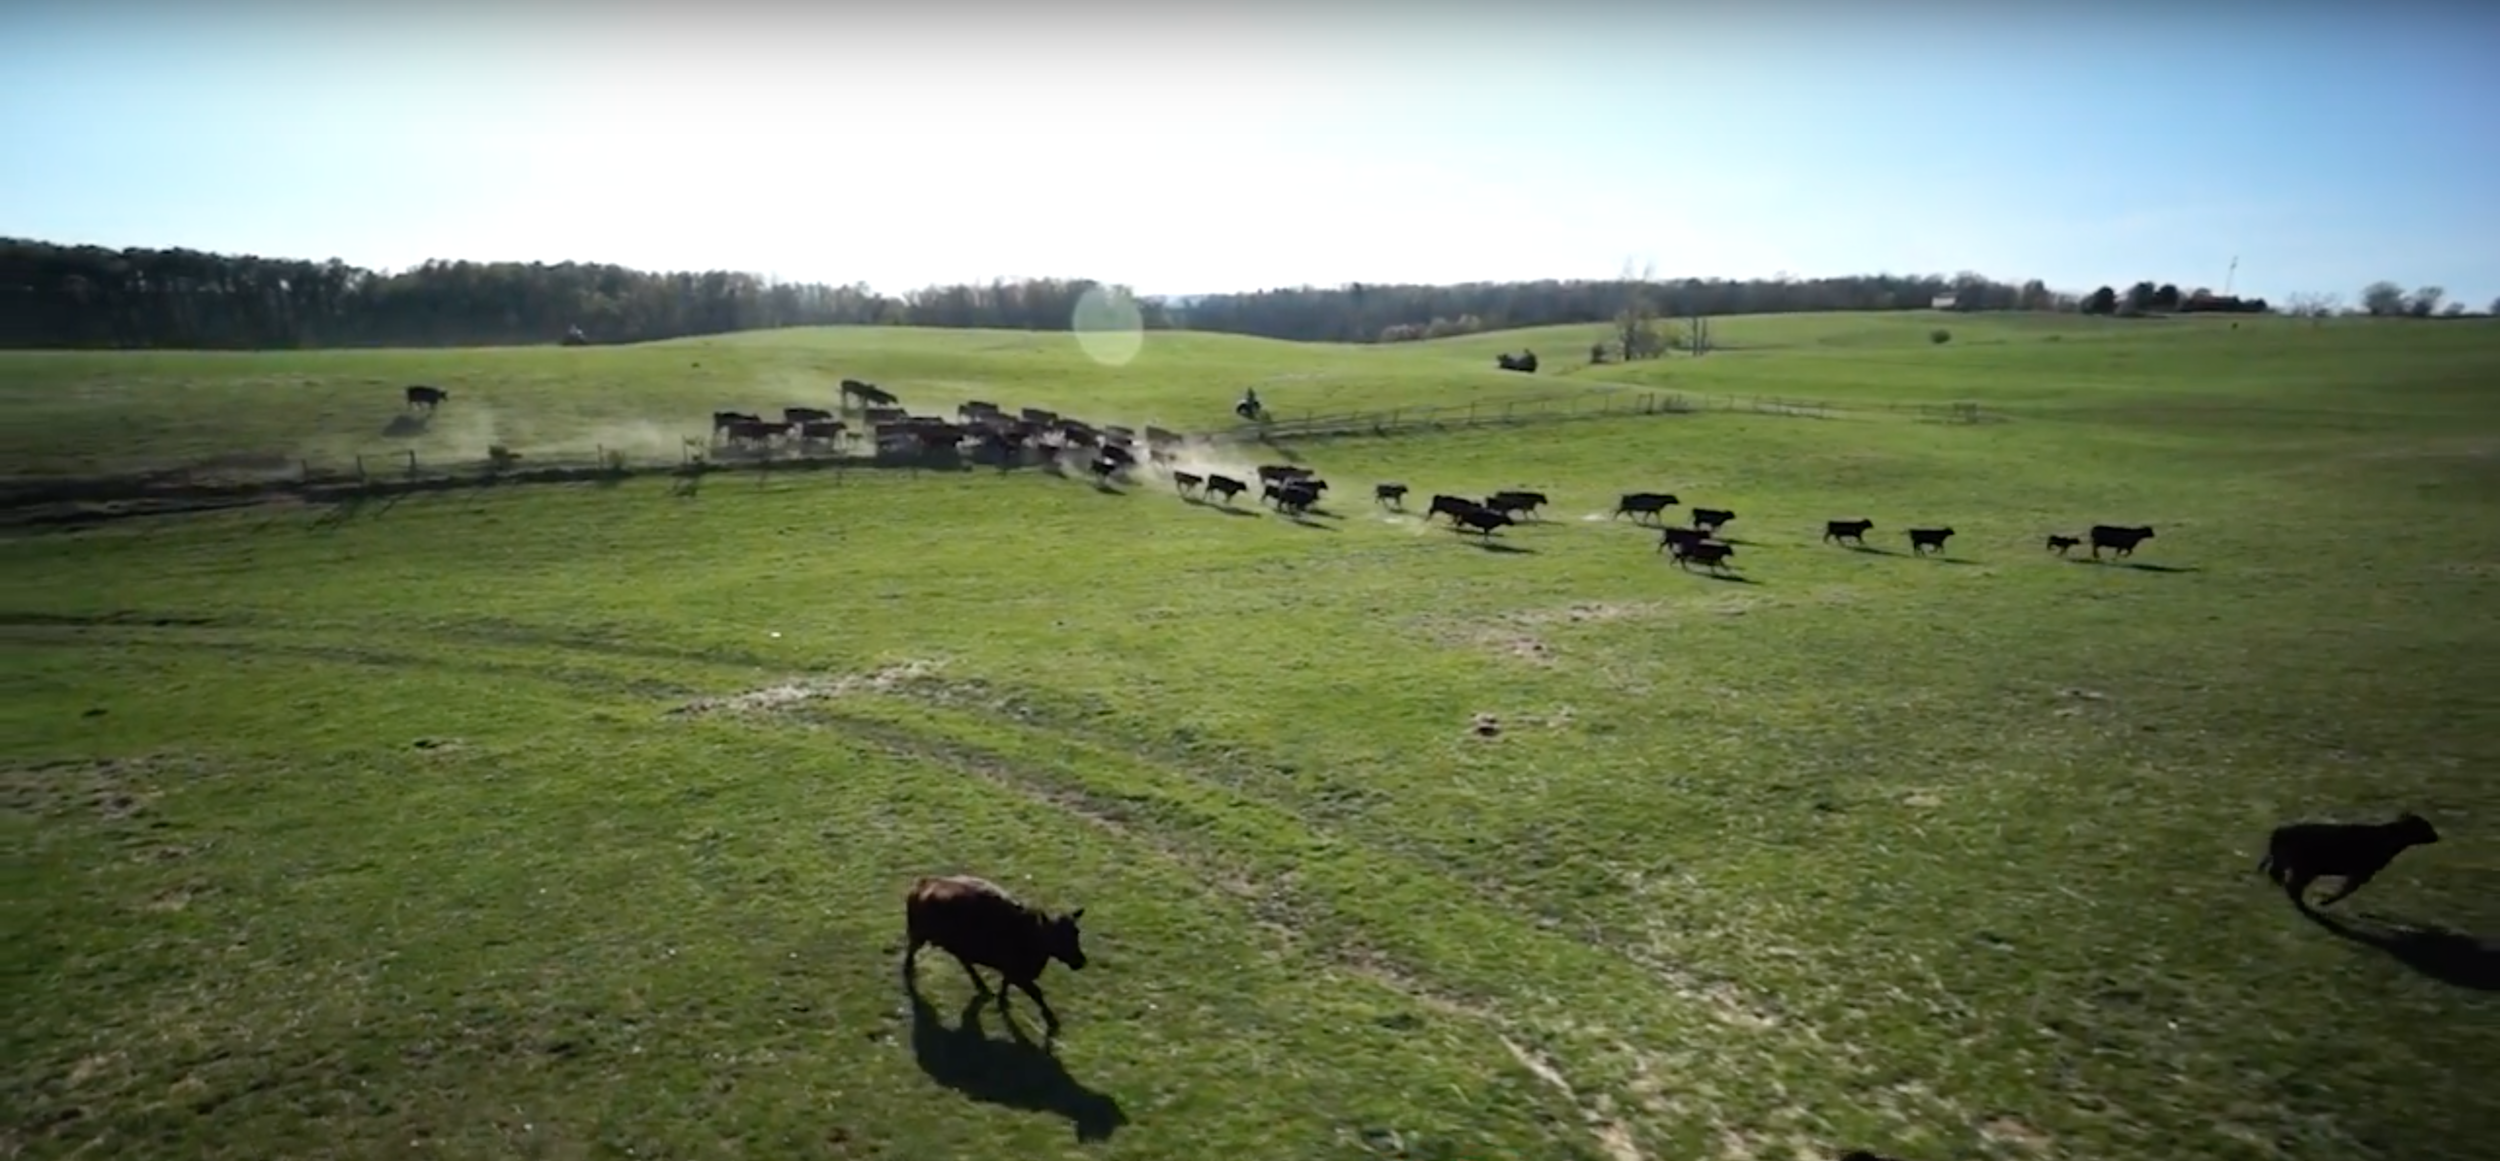 The Bagley Family raises their cattle in the heart of Virginia's Shenandoah Valley.